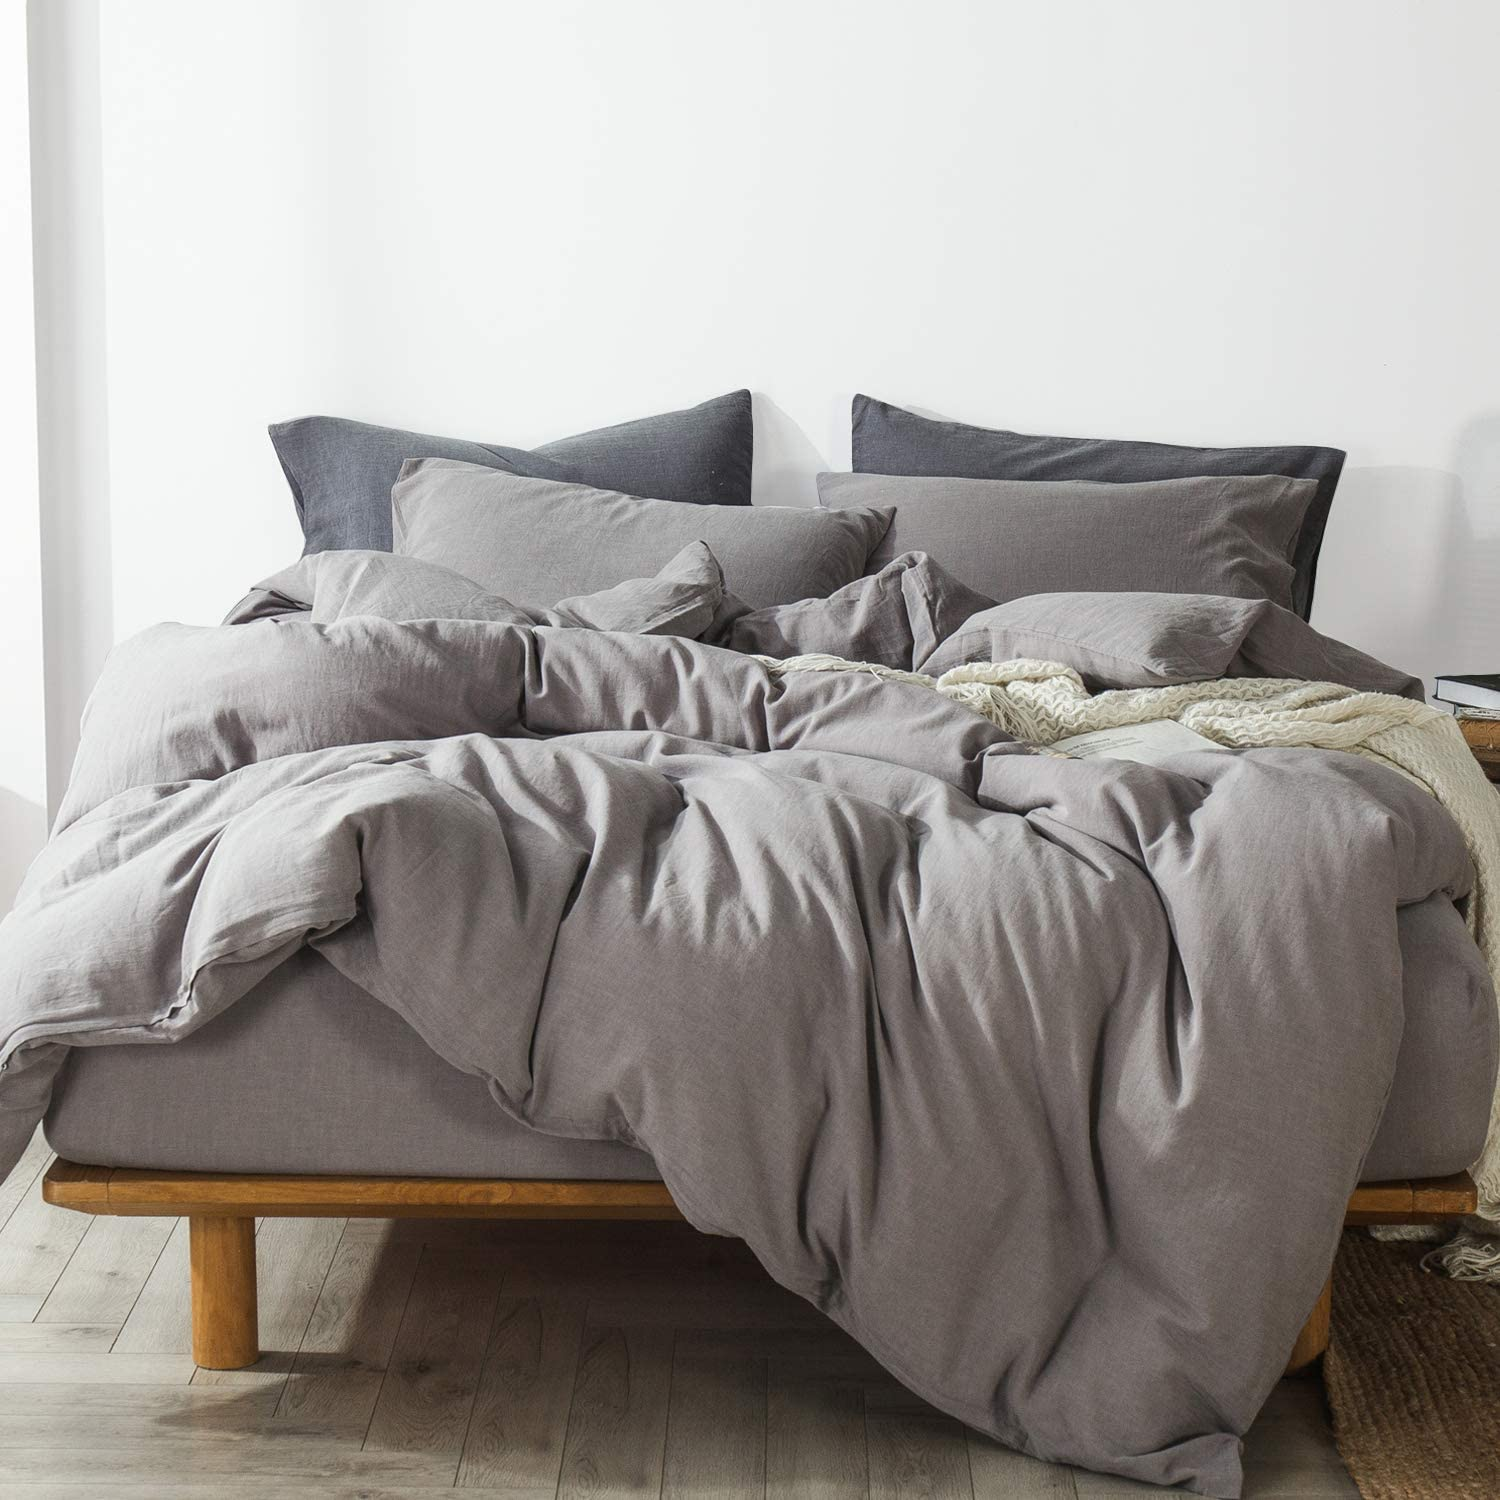 100/% Washed Cotton Linen Like Textured Breathable Durable Soft Comfy Linen Grey,Twin 1 Comforter Cover + 1 Pillow Sham MooMee Bedding Duvet Cover Set